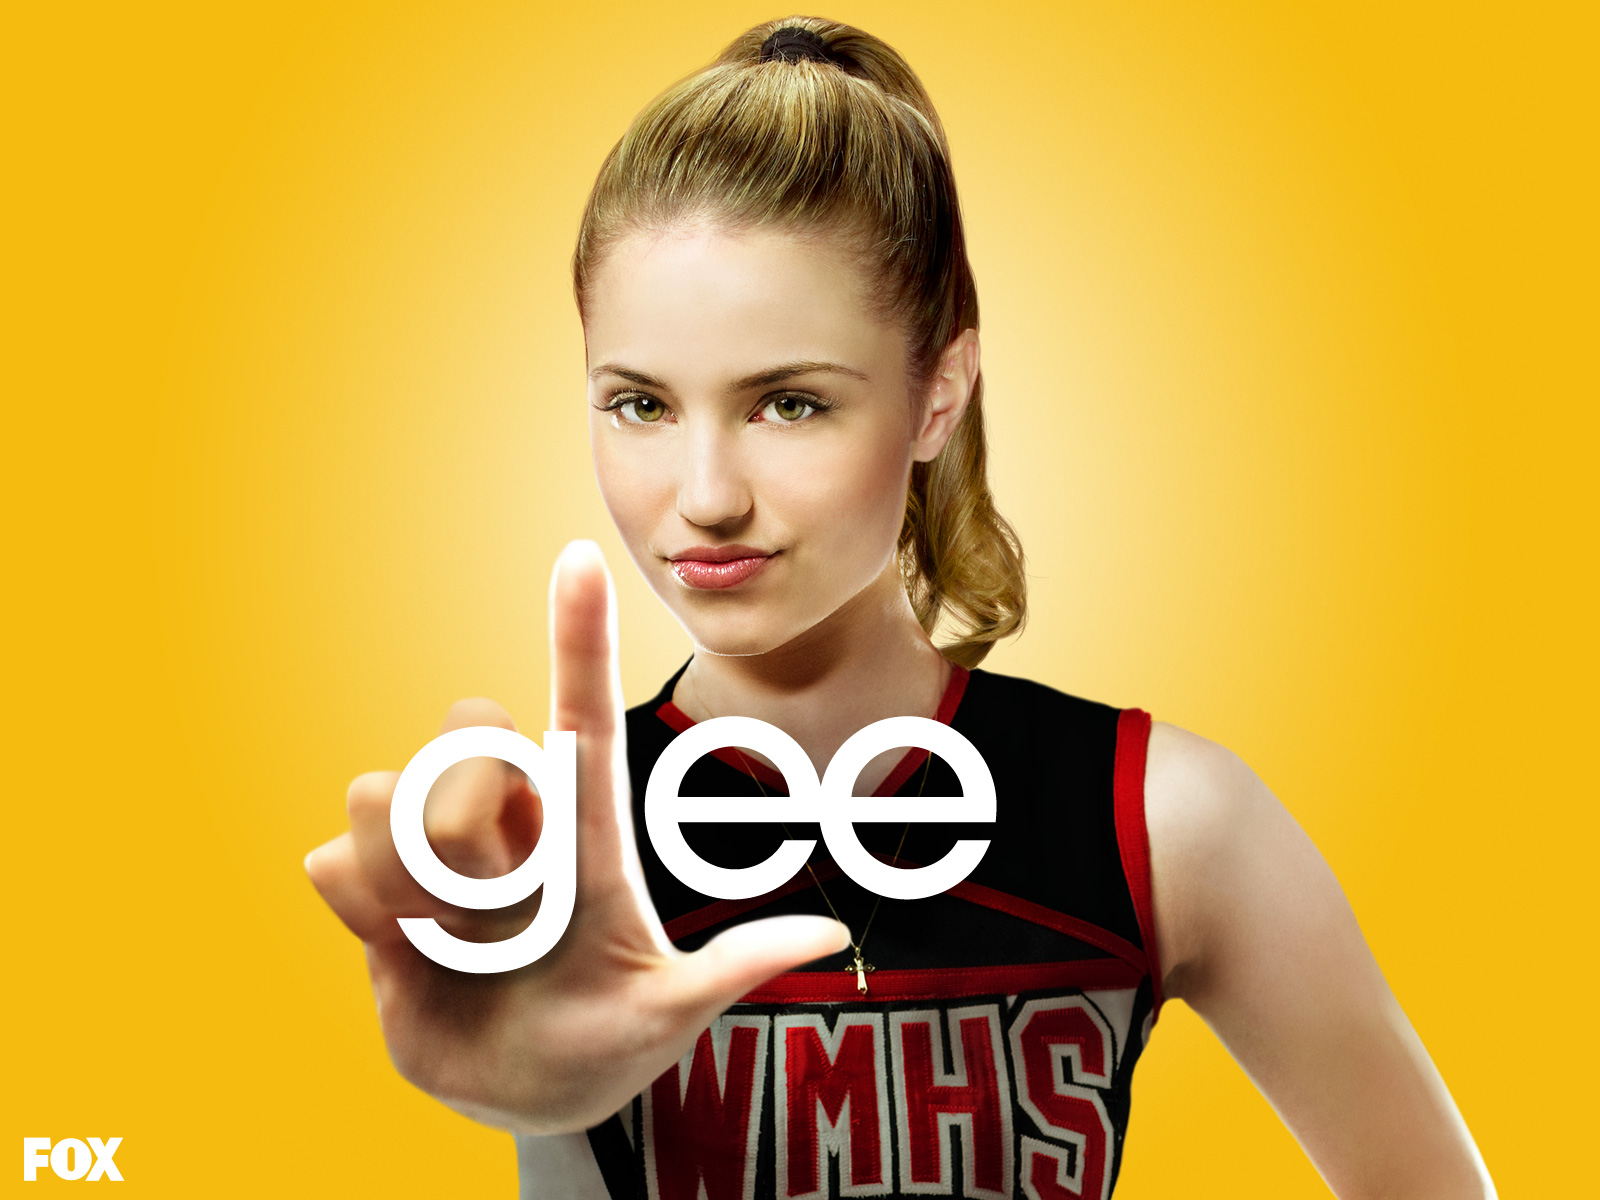 Dianna Agron in Glee 1087.15 Kb